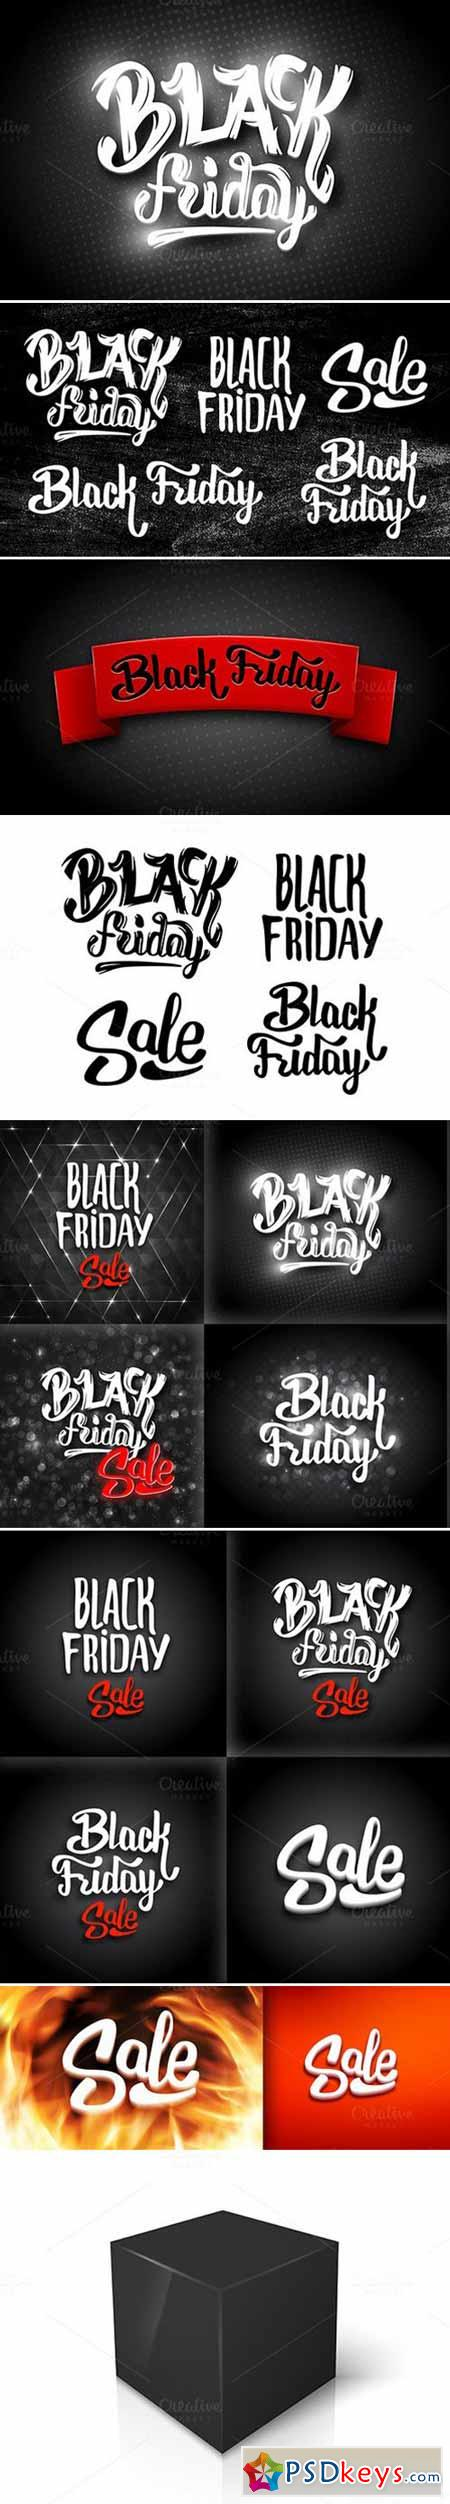 Black Friday Banners Big Bundle 430323